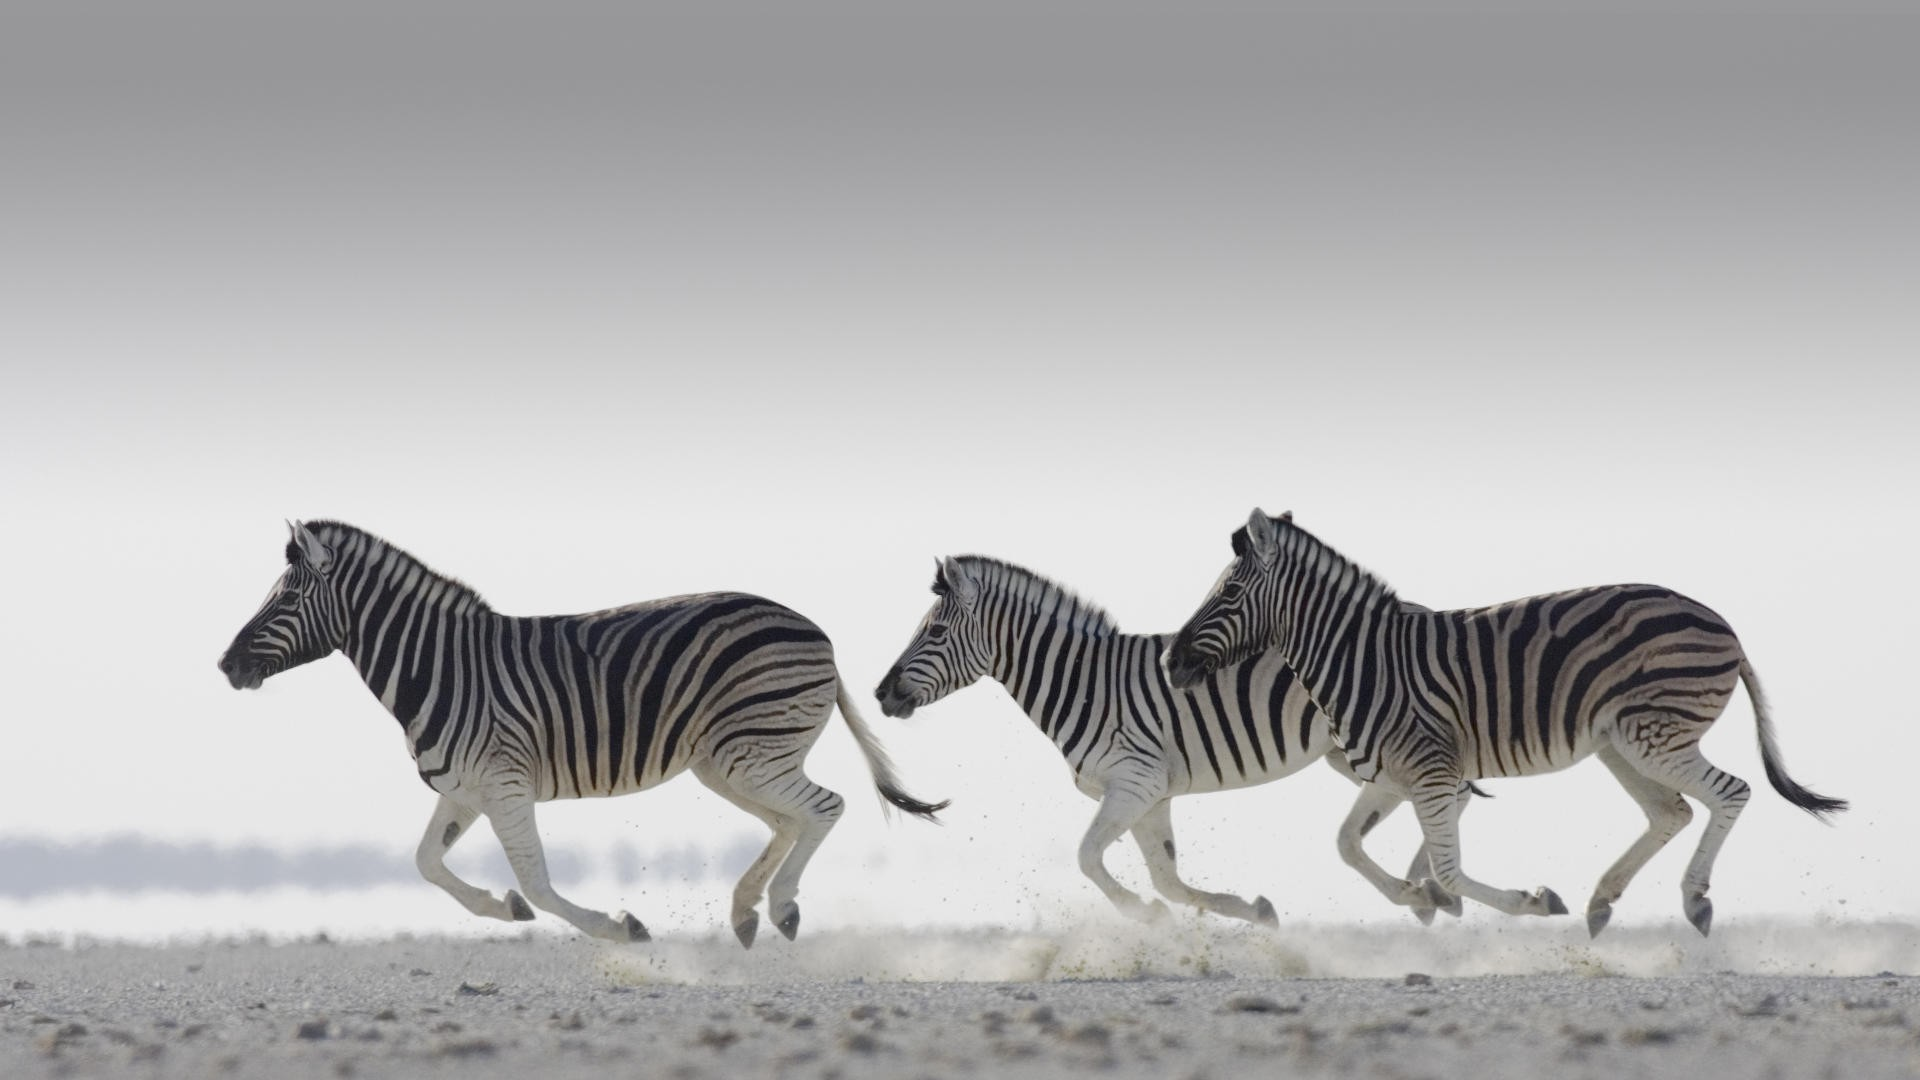 zebra wallpapers pictures images